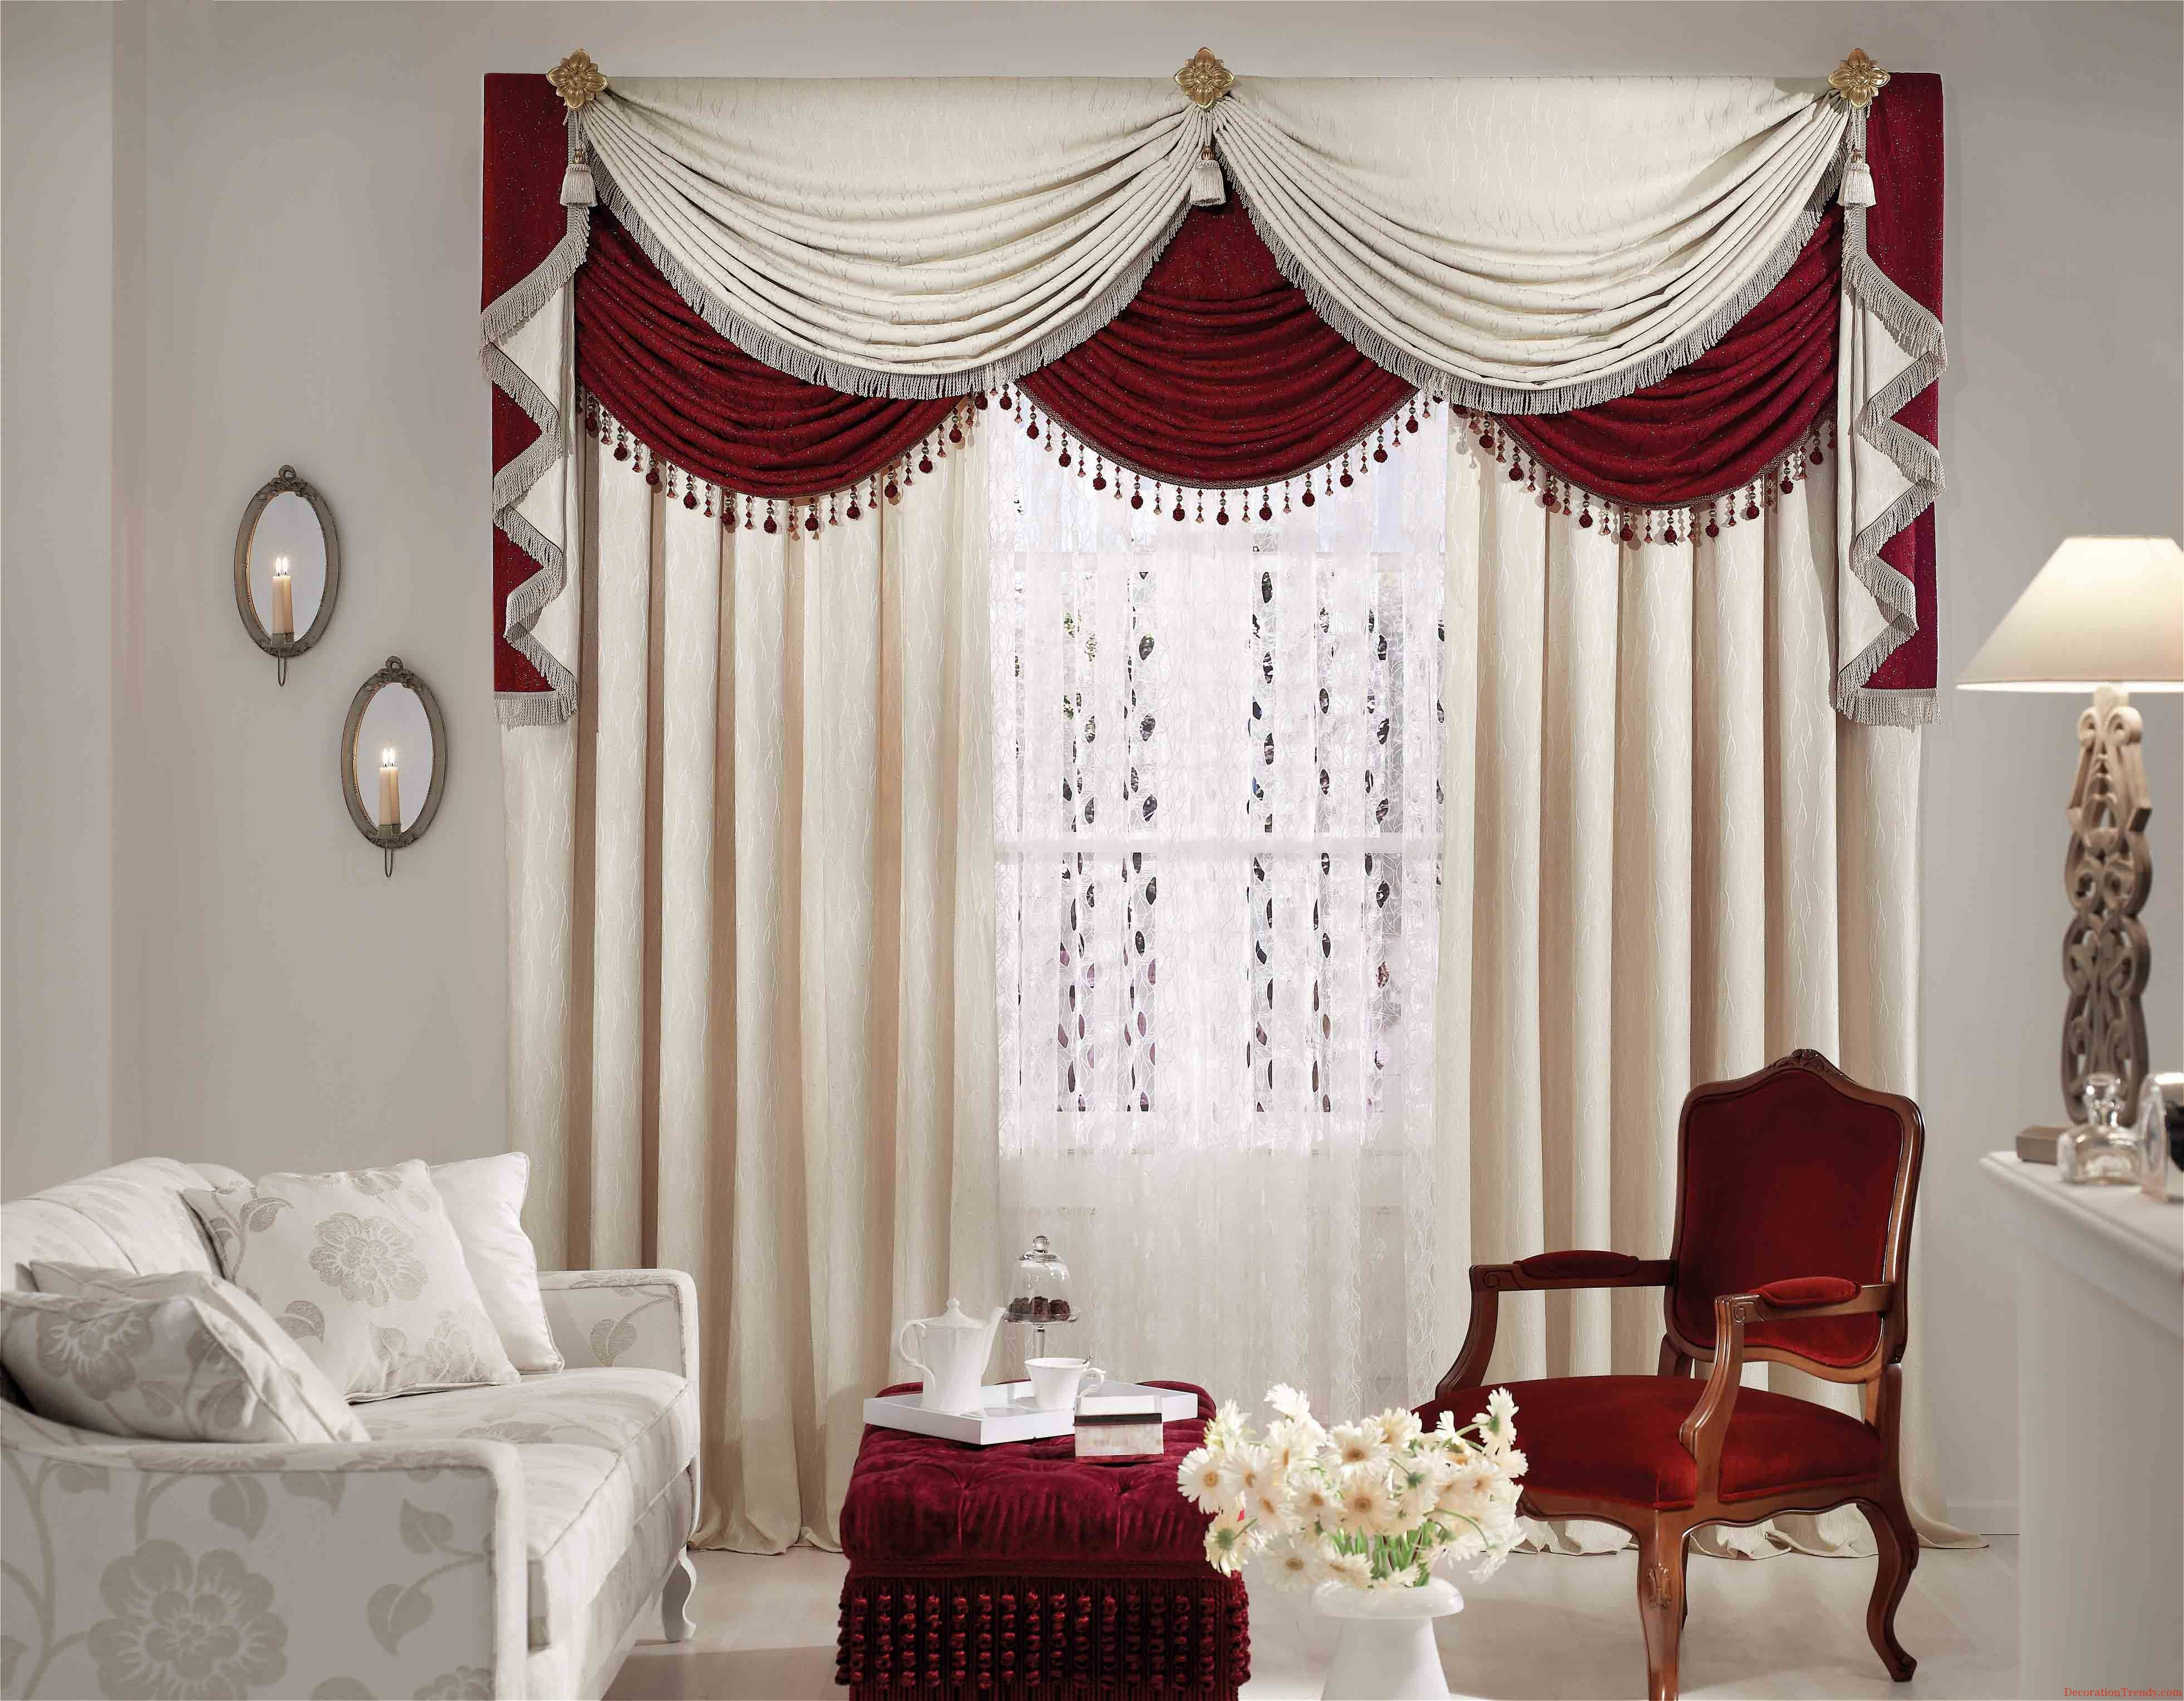 Living Room Curtains Designs Captivating 40 Amazing & Stunning Curtain Design Ideas 2017  Curtain Designs Decorating Design